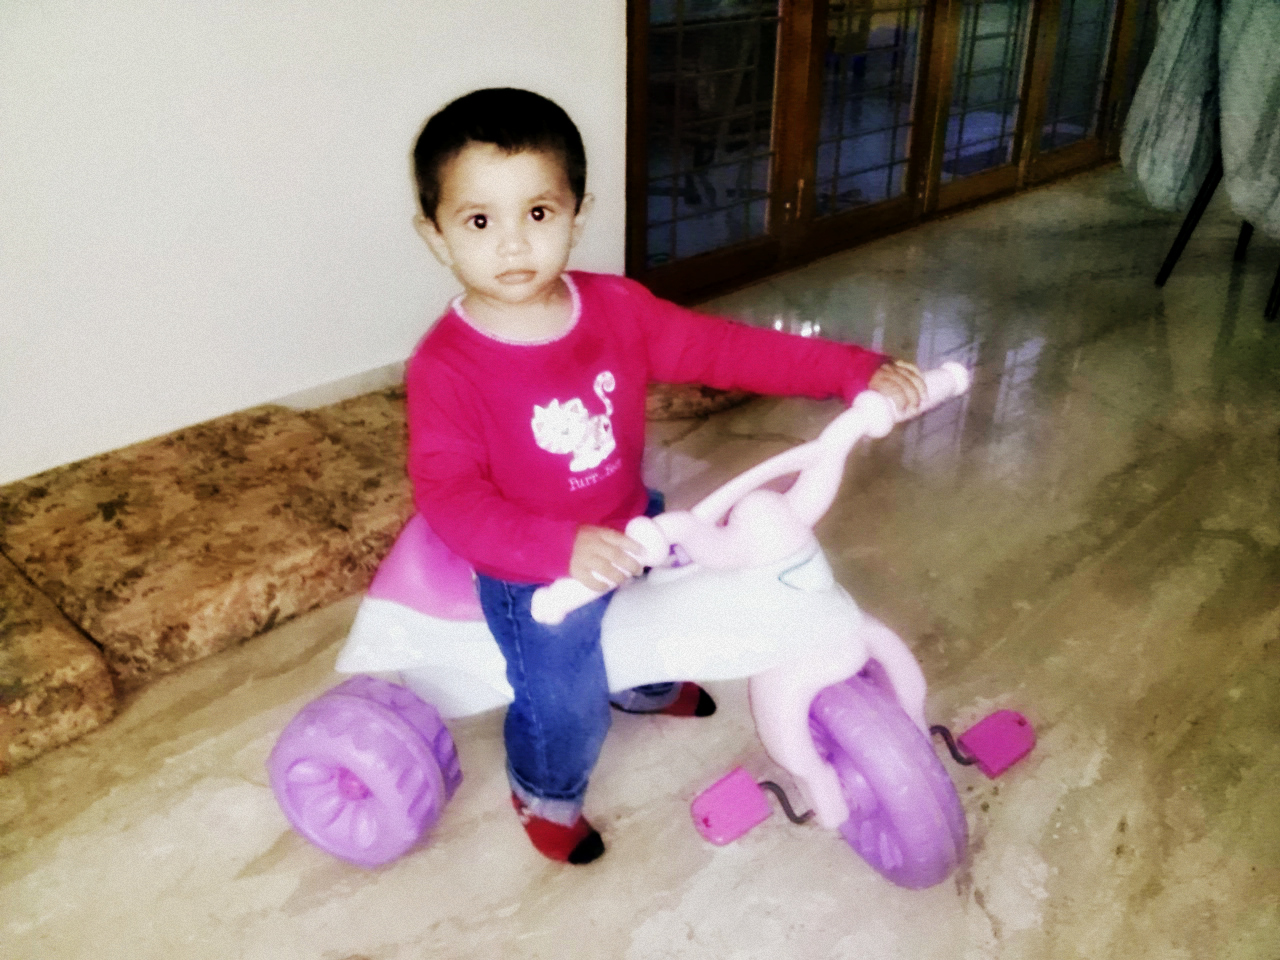 Piglet on his Barbie tricycle